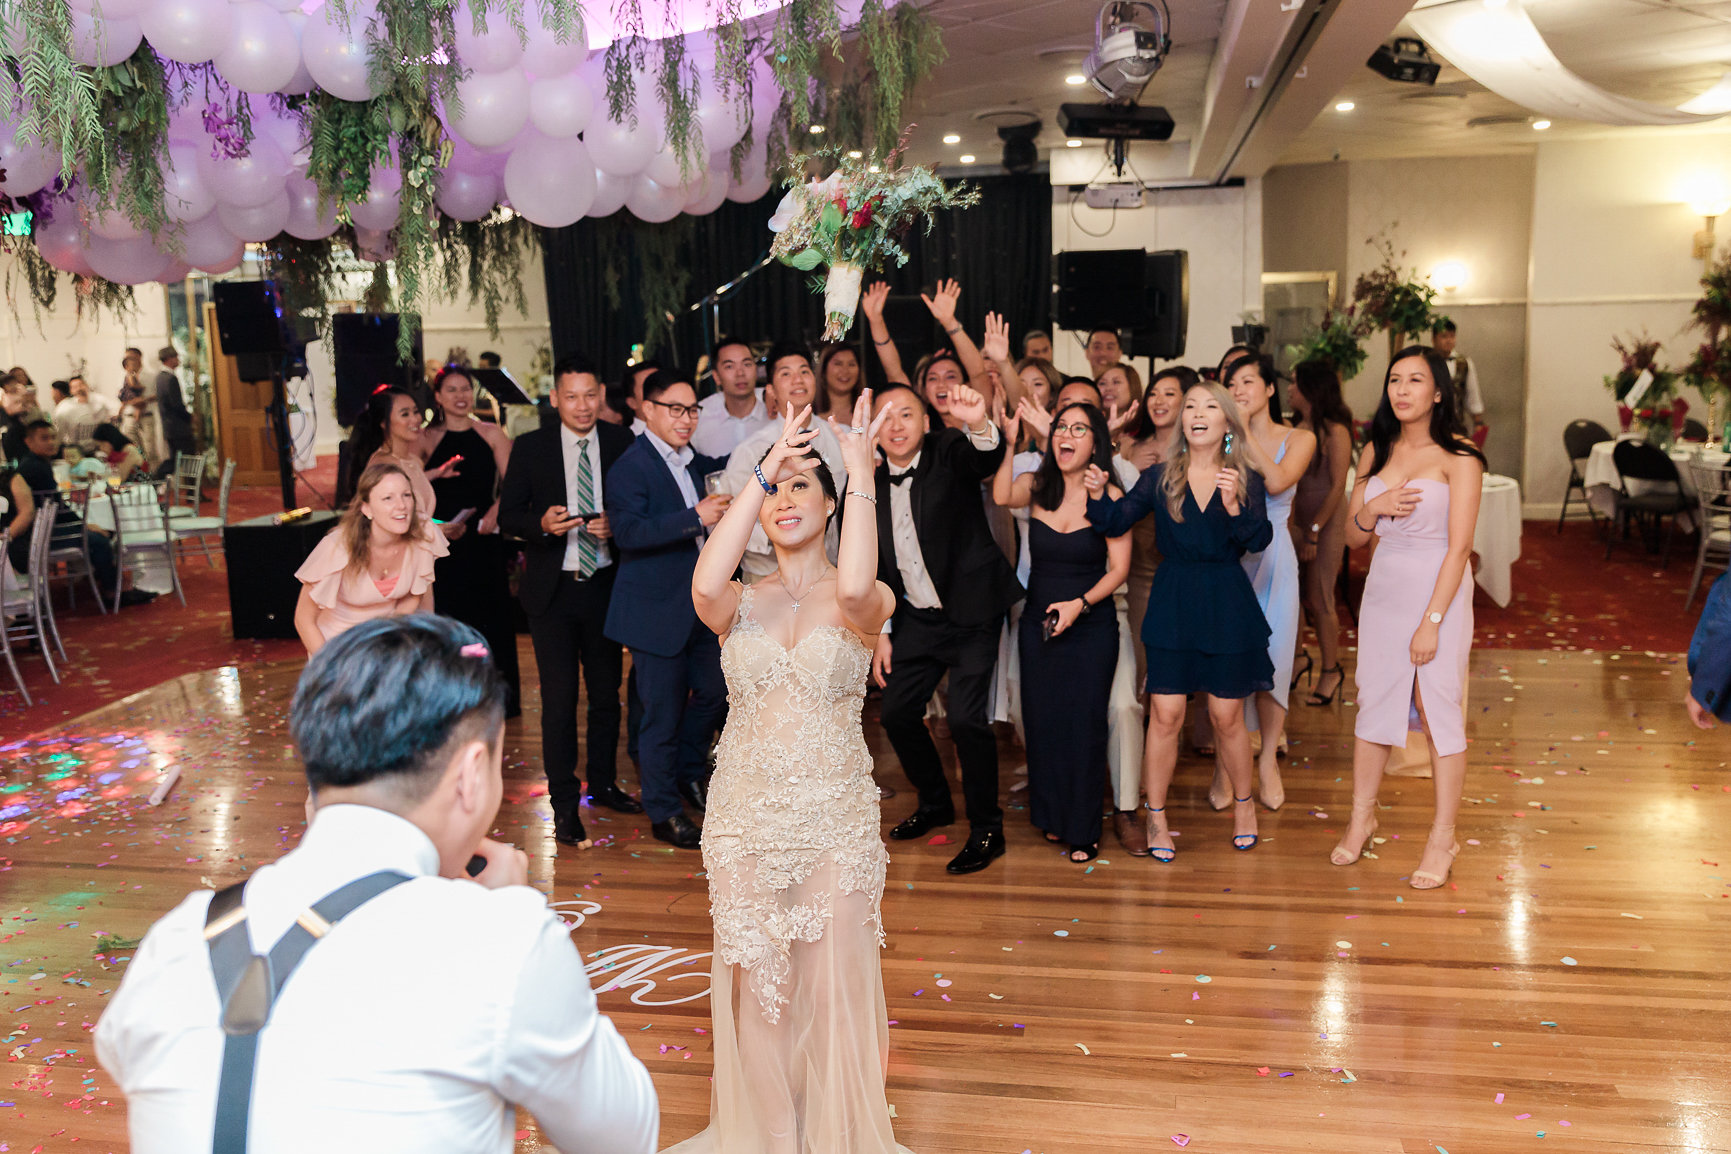 Sydney Wedding Photography Crystal Palace Function Centre - 06.jpg